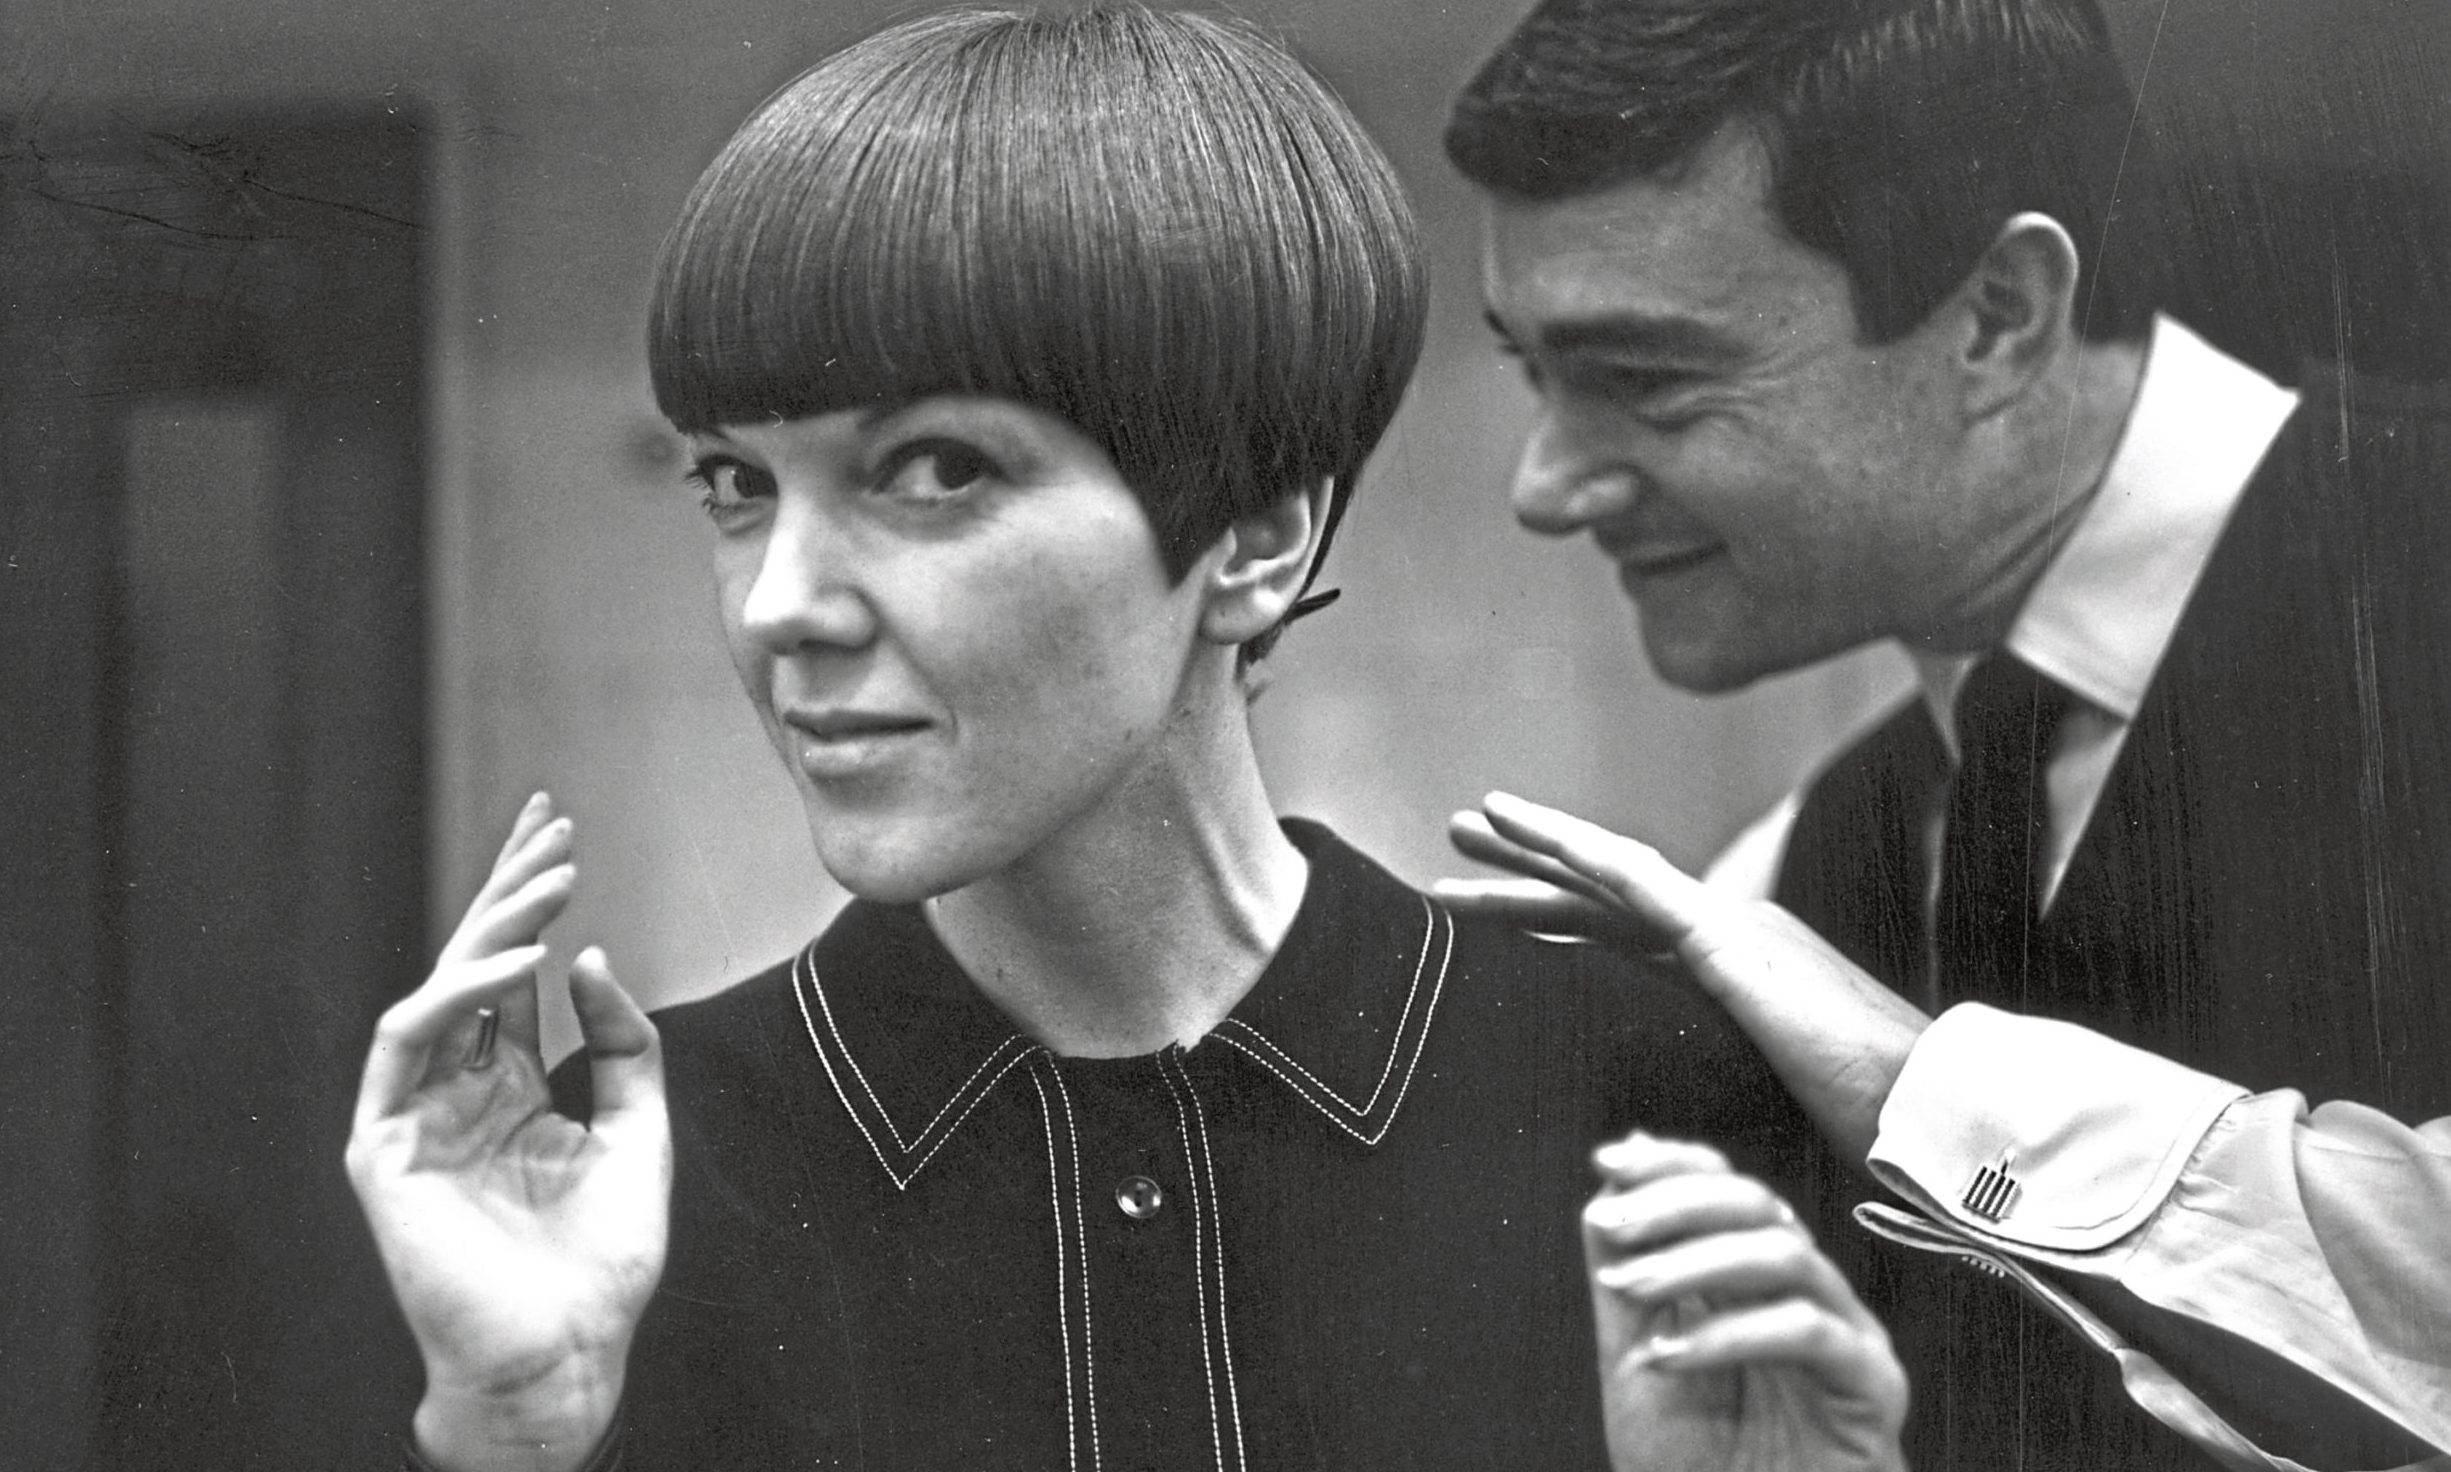 Mary Quant having her hair cut by Vidal Sassoon in November 1964.